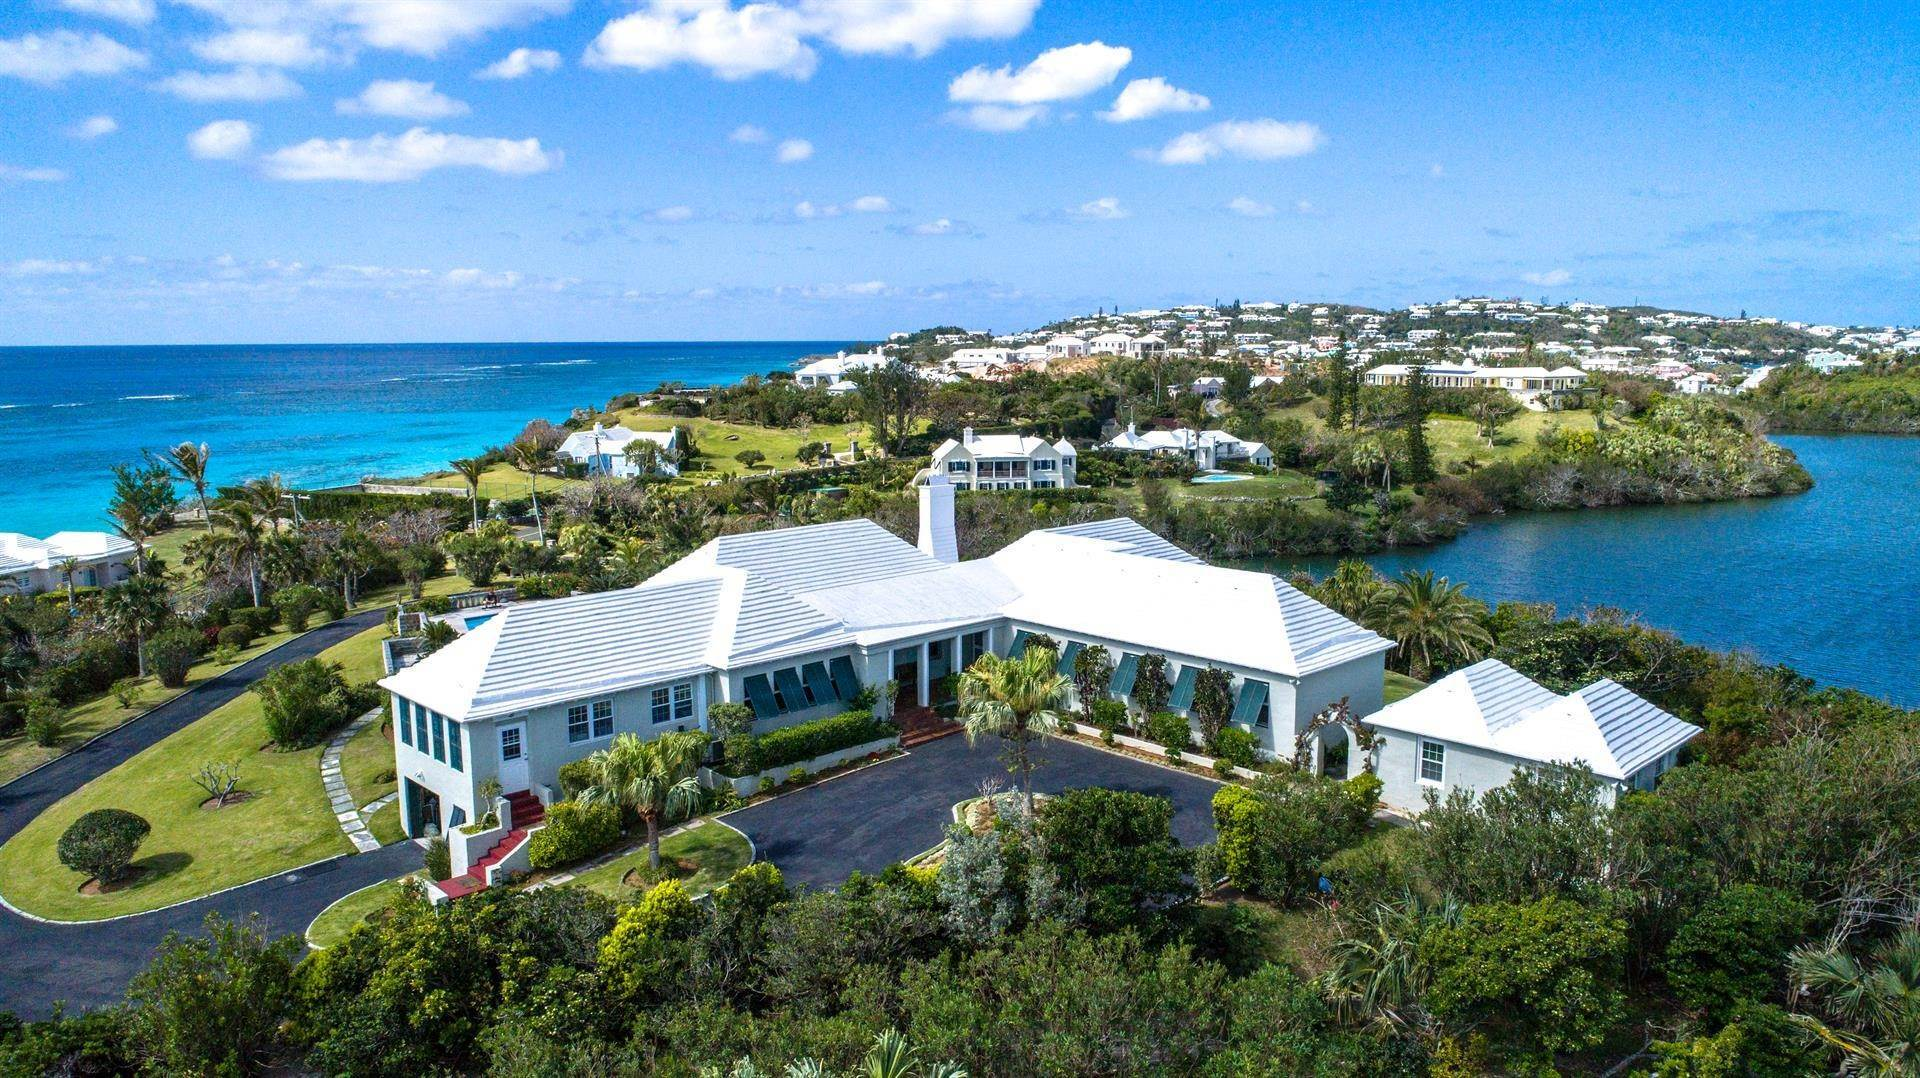 Mirabeau In Tucker's Town 7 South Road, Hamilton Parish, Bermuda HS02 버뮤다에 Single Family Homes